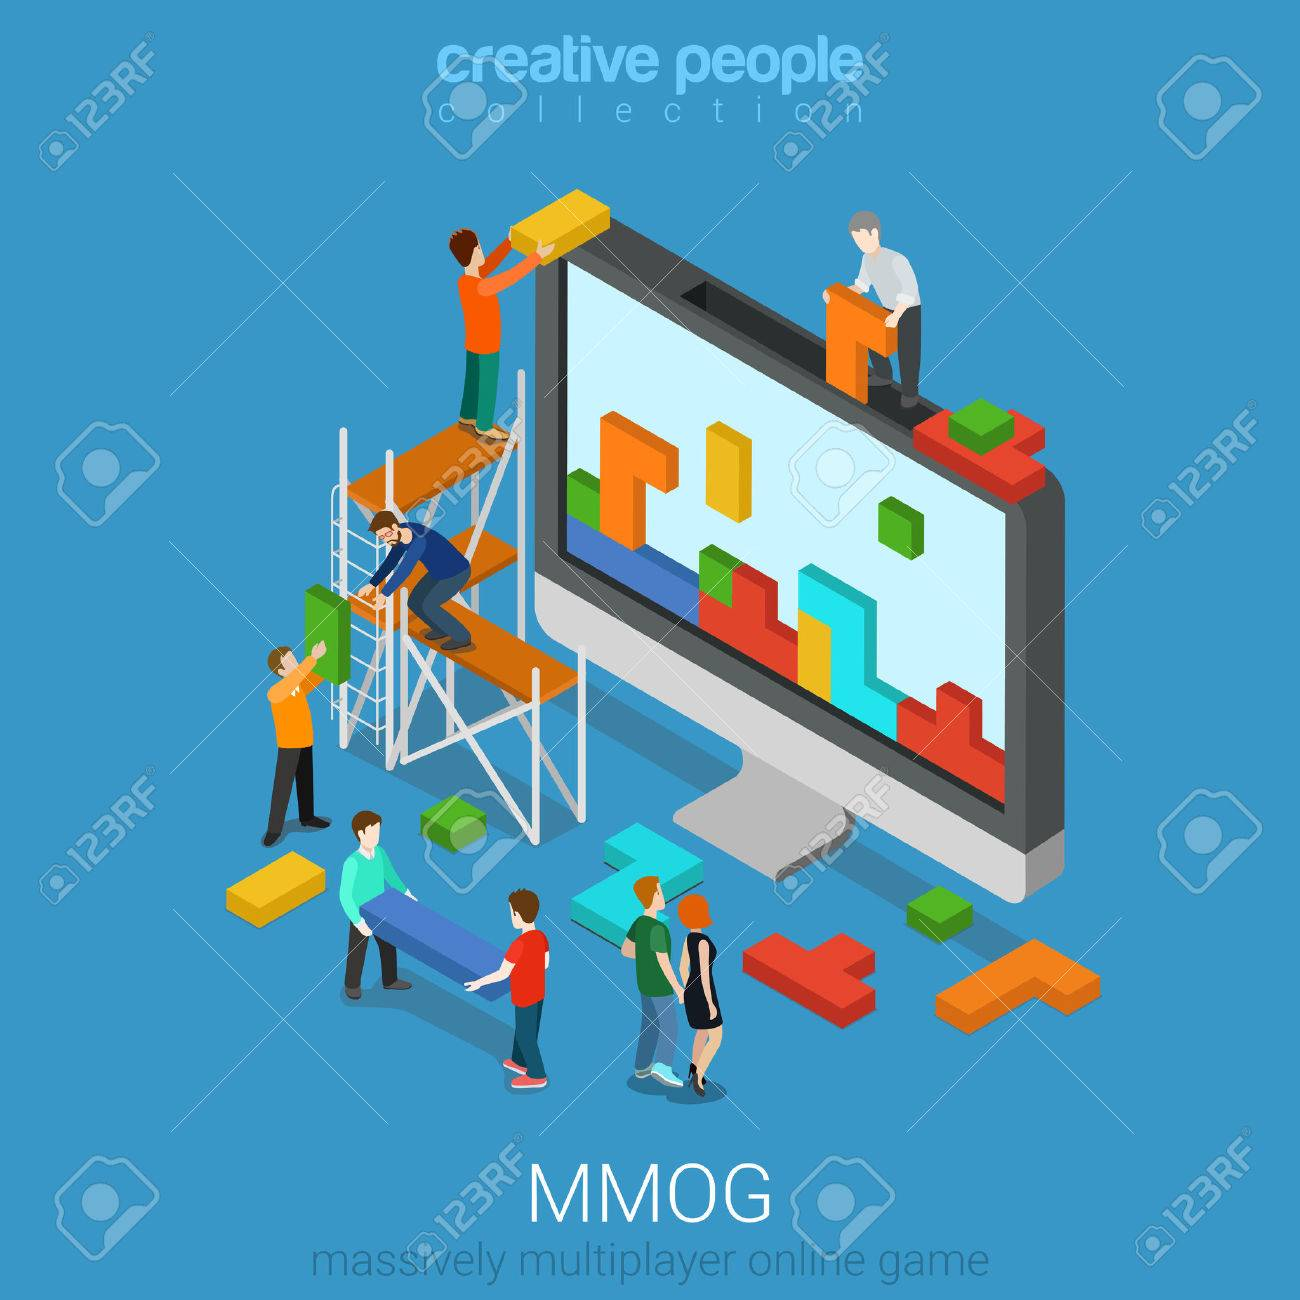 Flat 3d isometry isometric MMOG massively multiplayer online game gaming concept web infographics vector illustration. Big computer micro people play bricks. Creative people collection. Stock Vector - 56931494